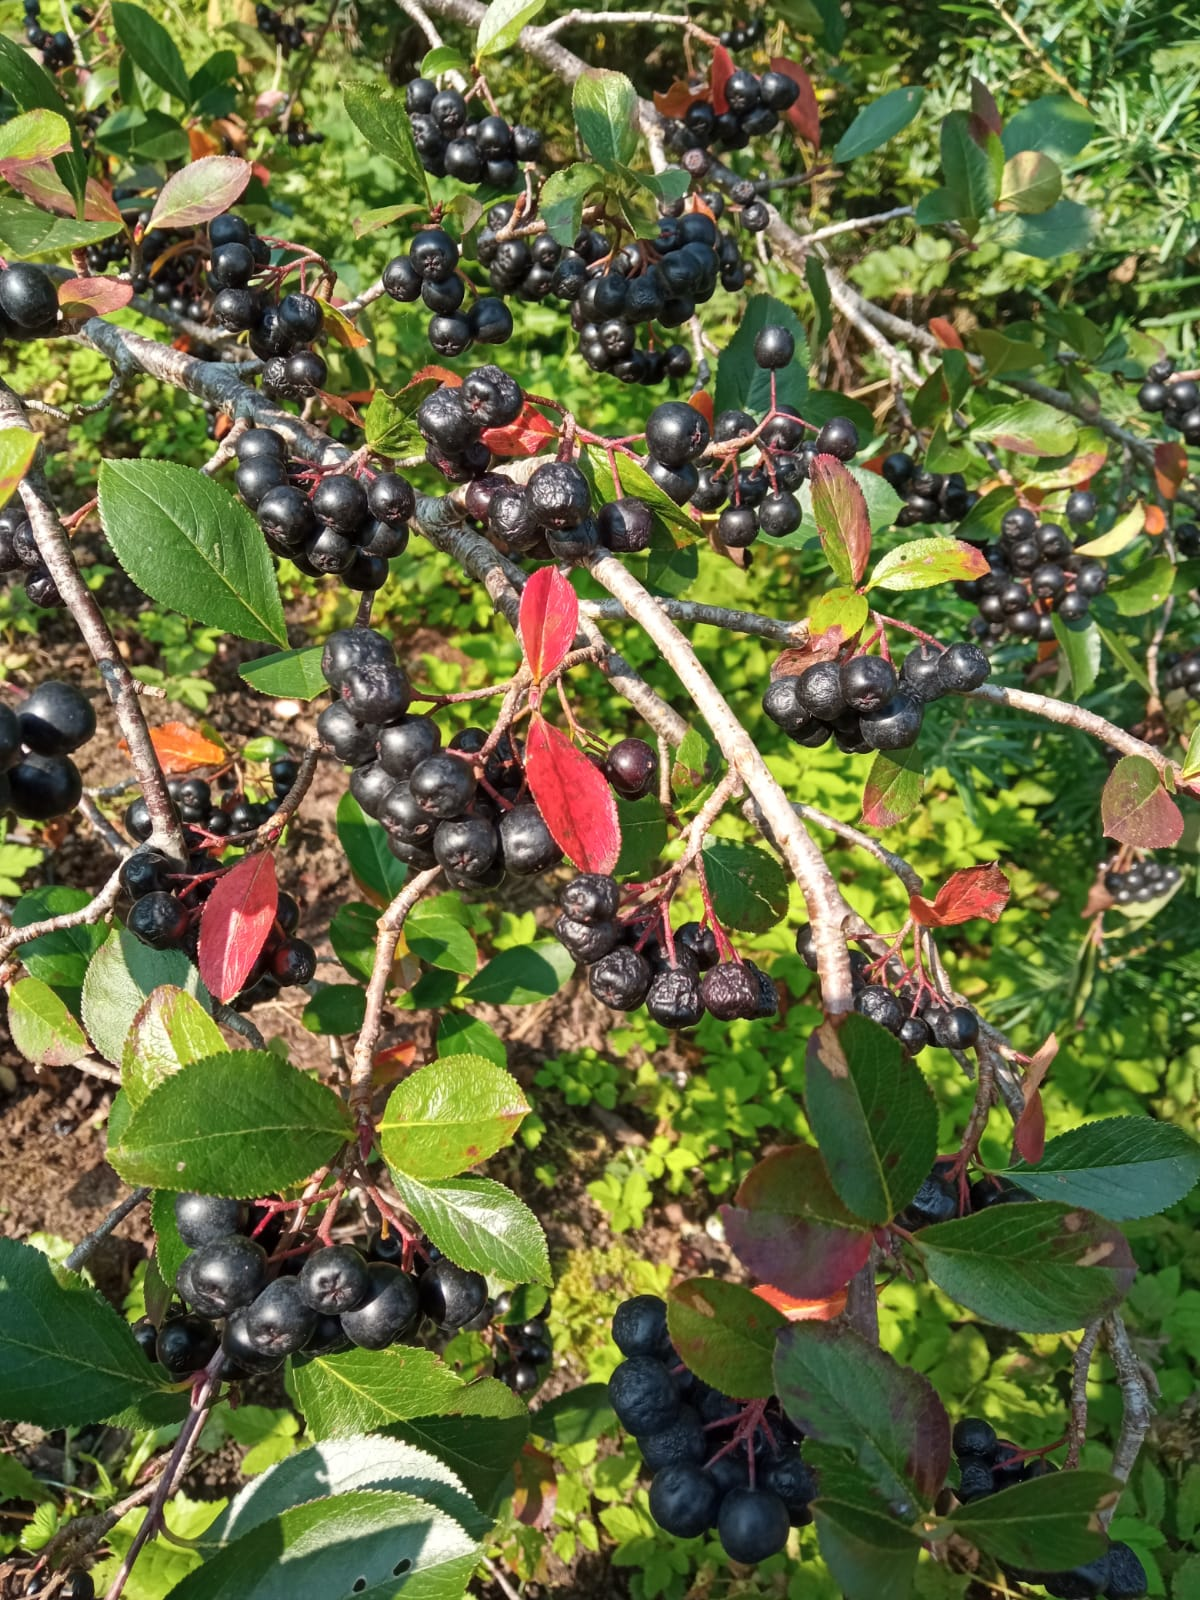 dark (black) berries on brunches